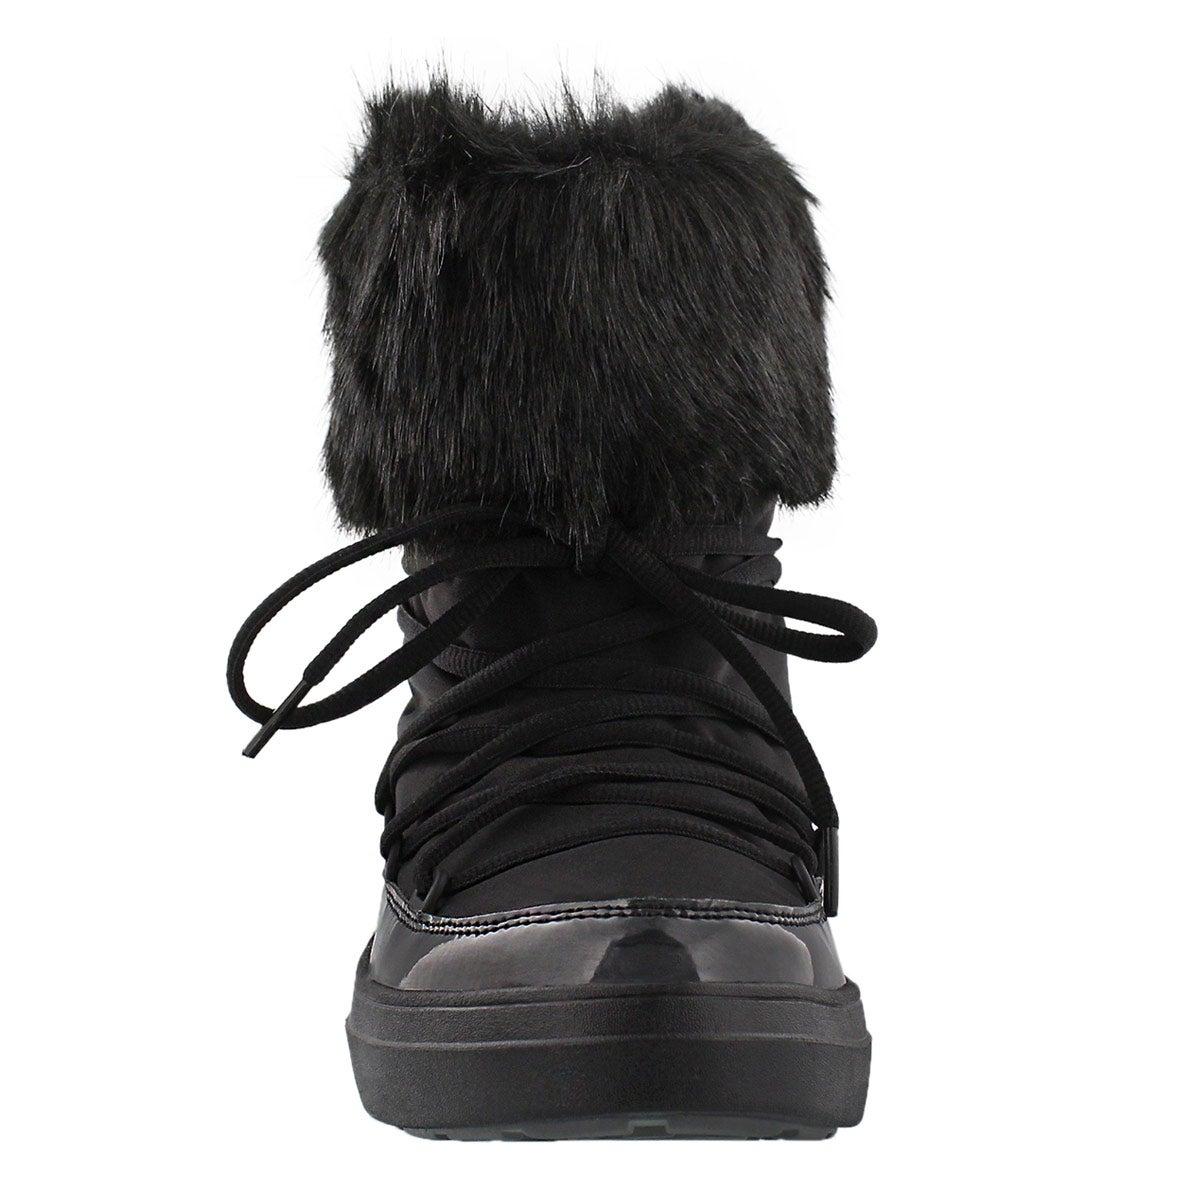 Lds Lodgepoint Lace black winter boot